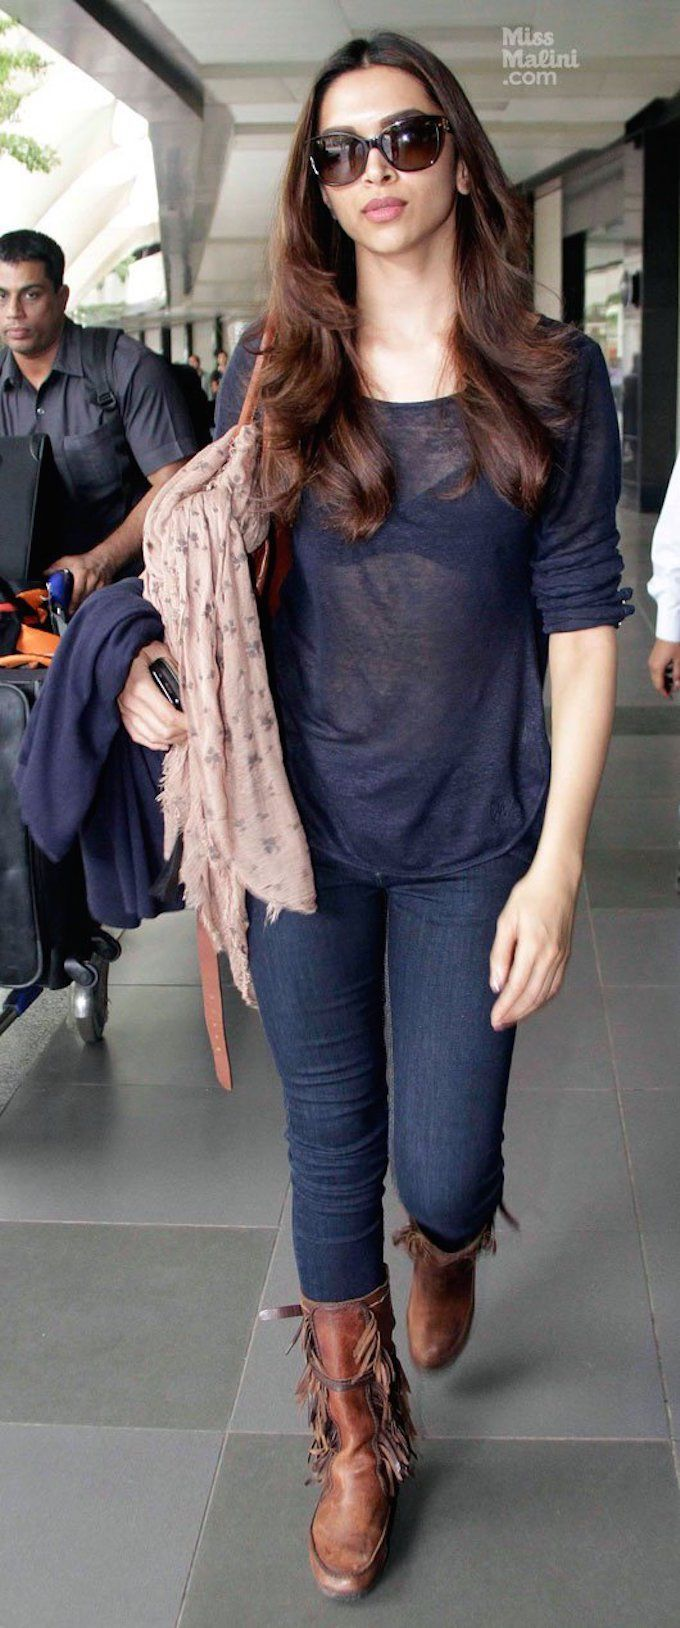 Deepika Padukone casual chic style at the airport